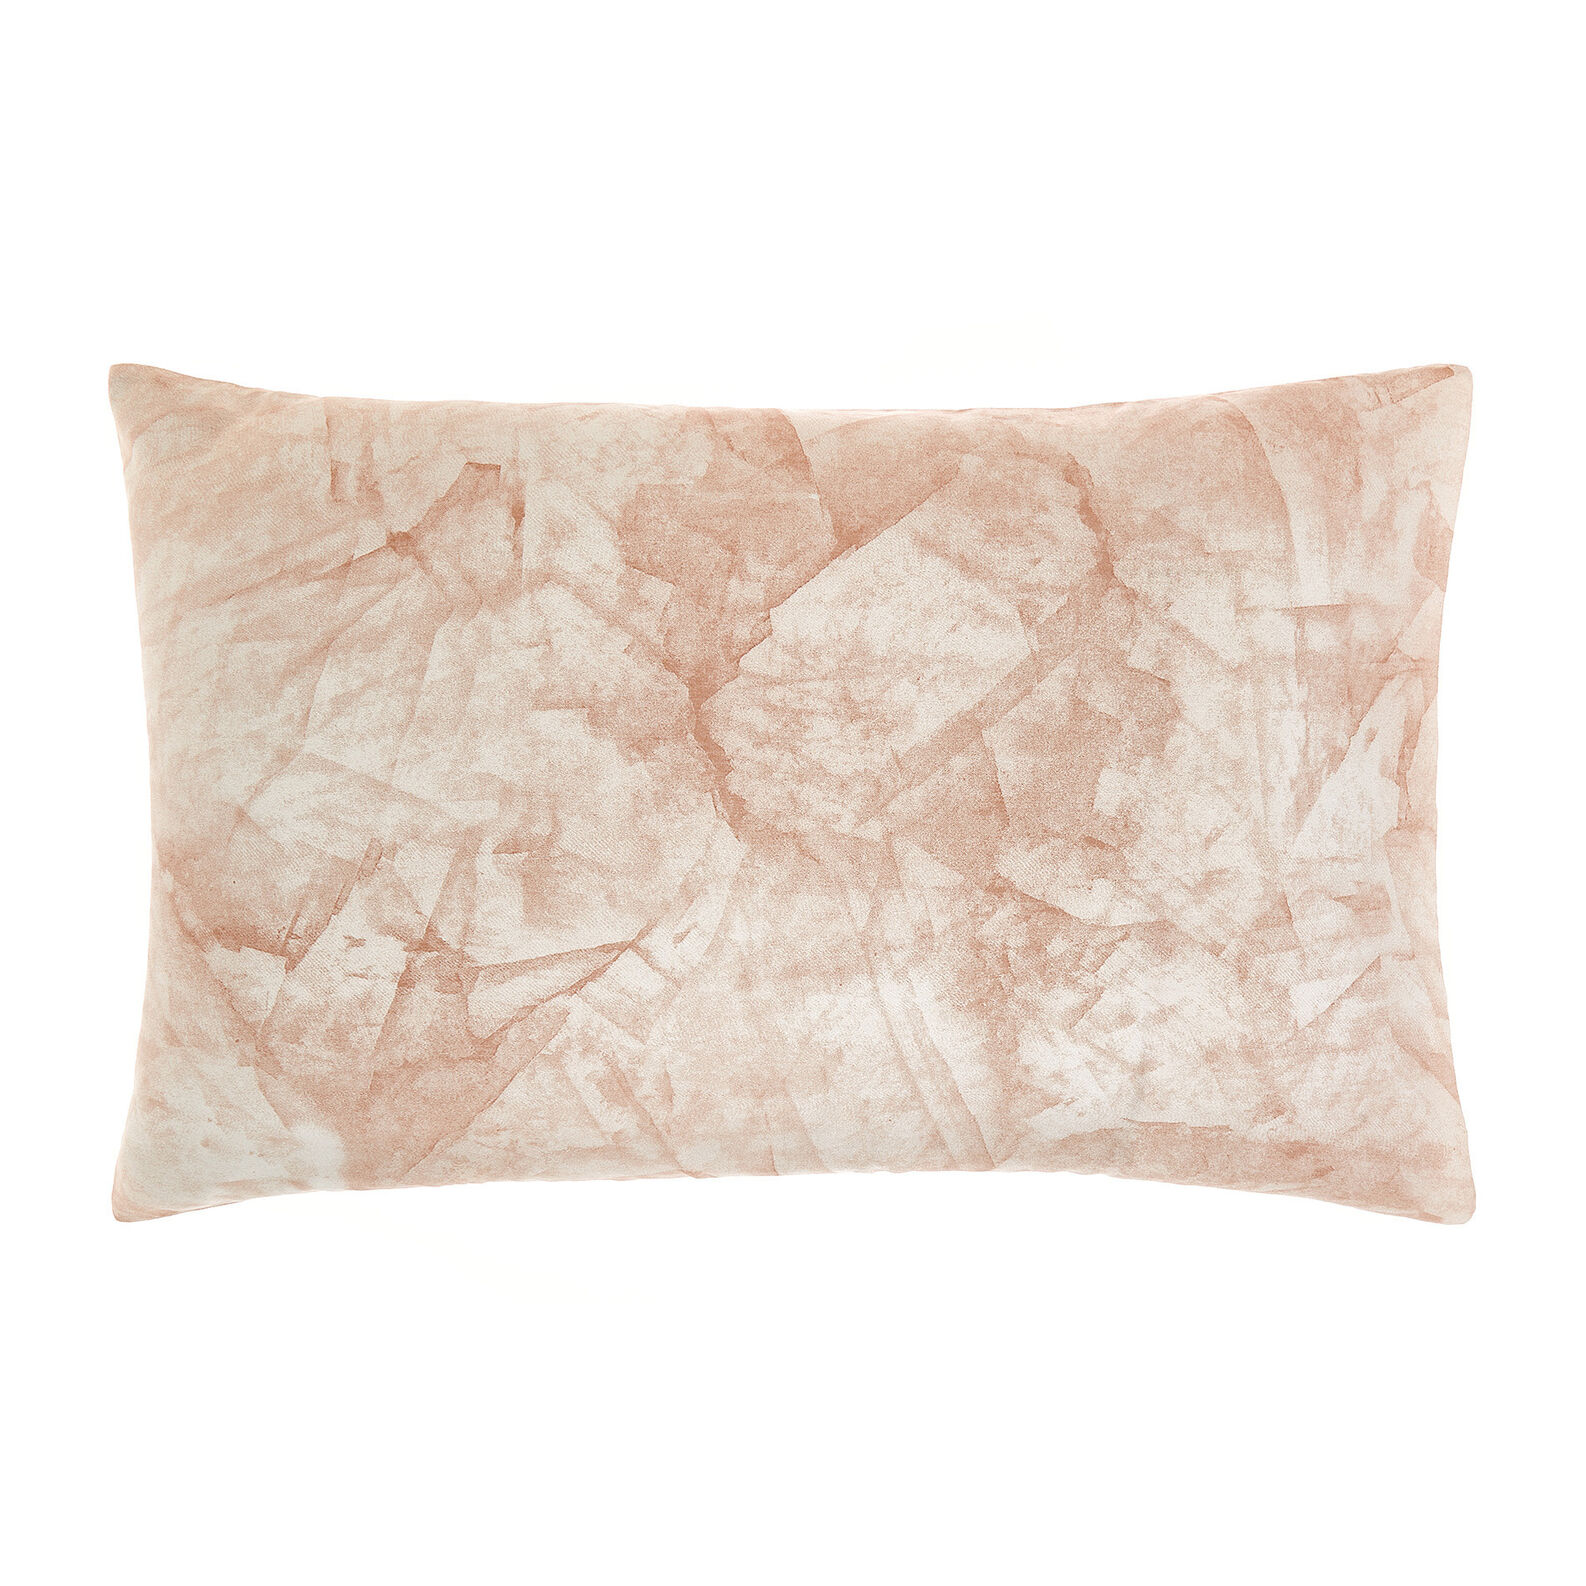 Cotton satin pillowcase with marble pattern